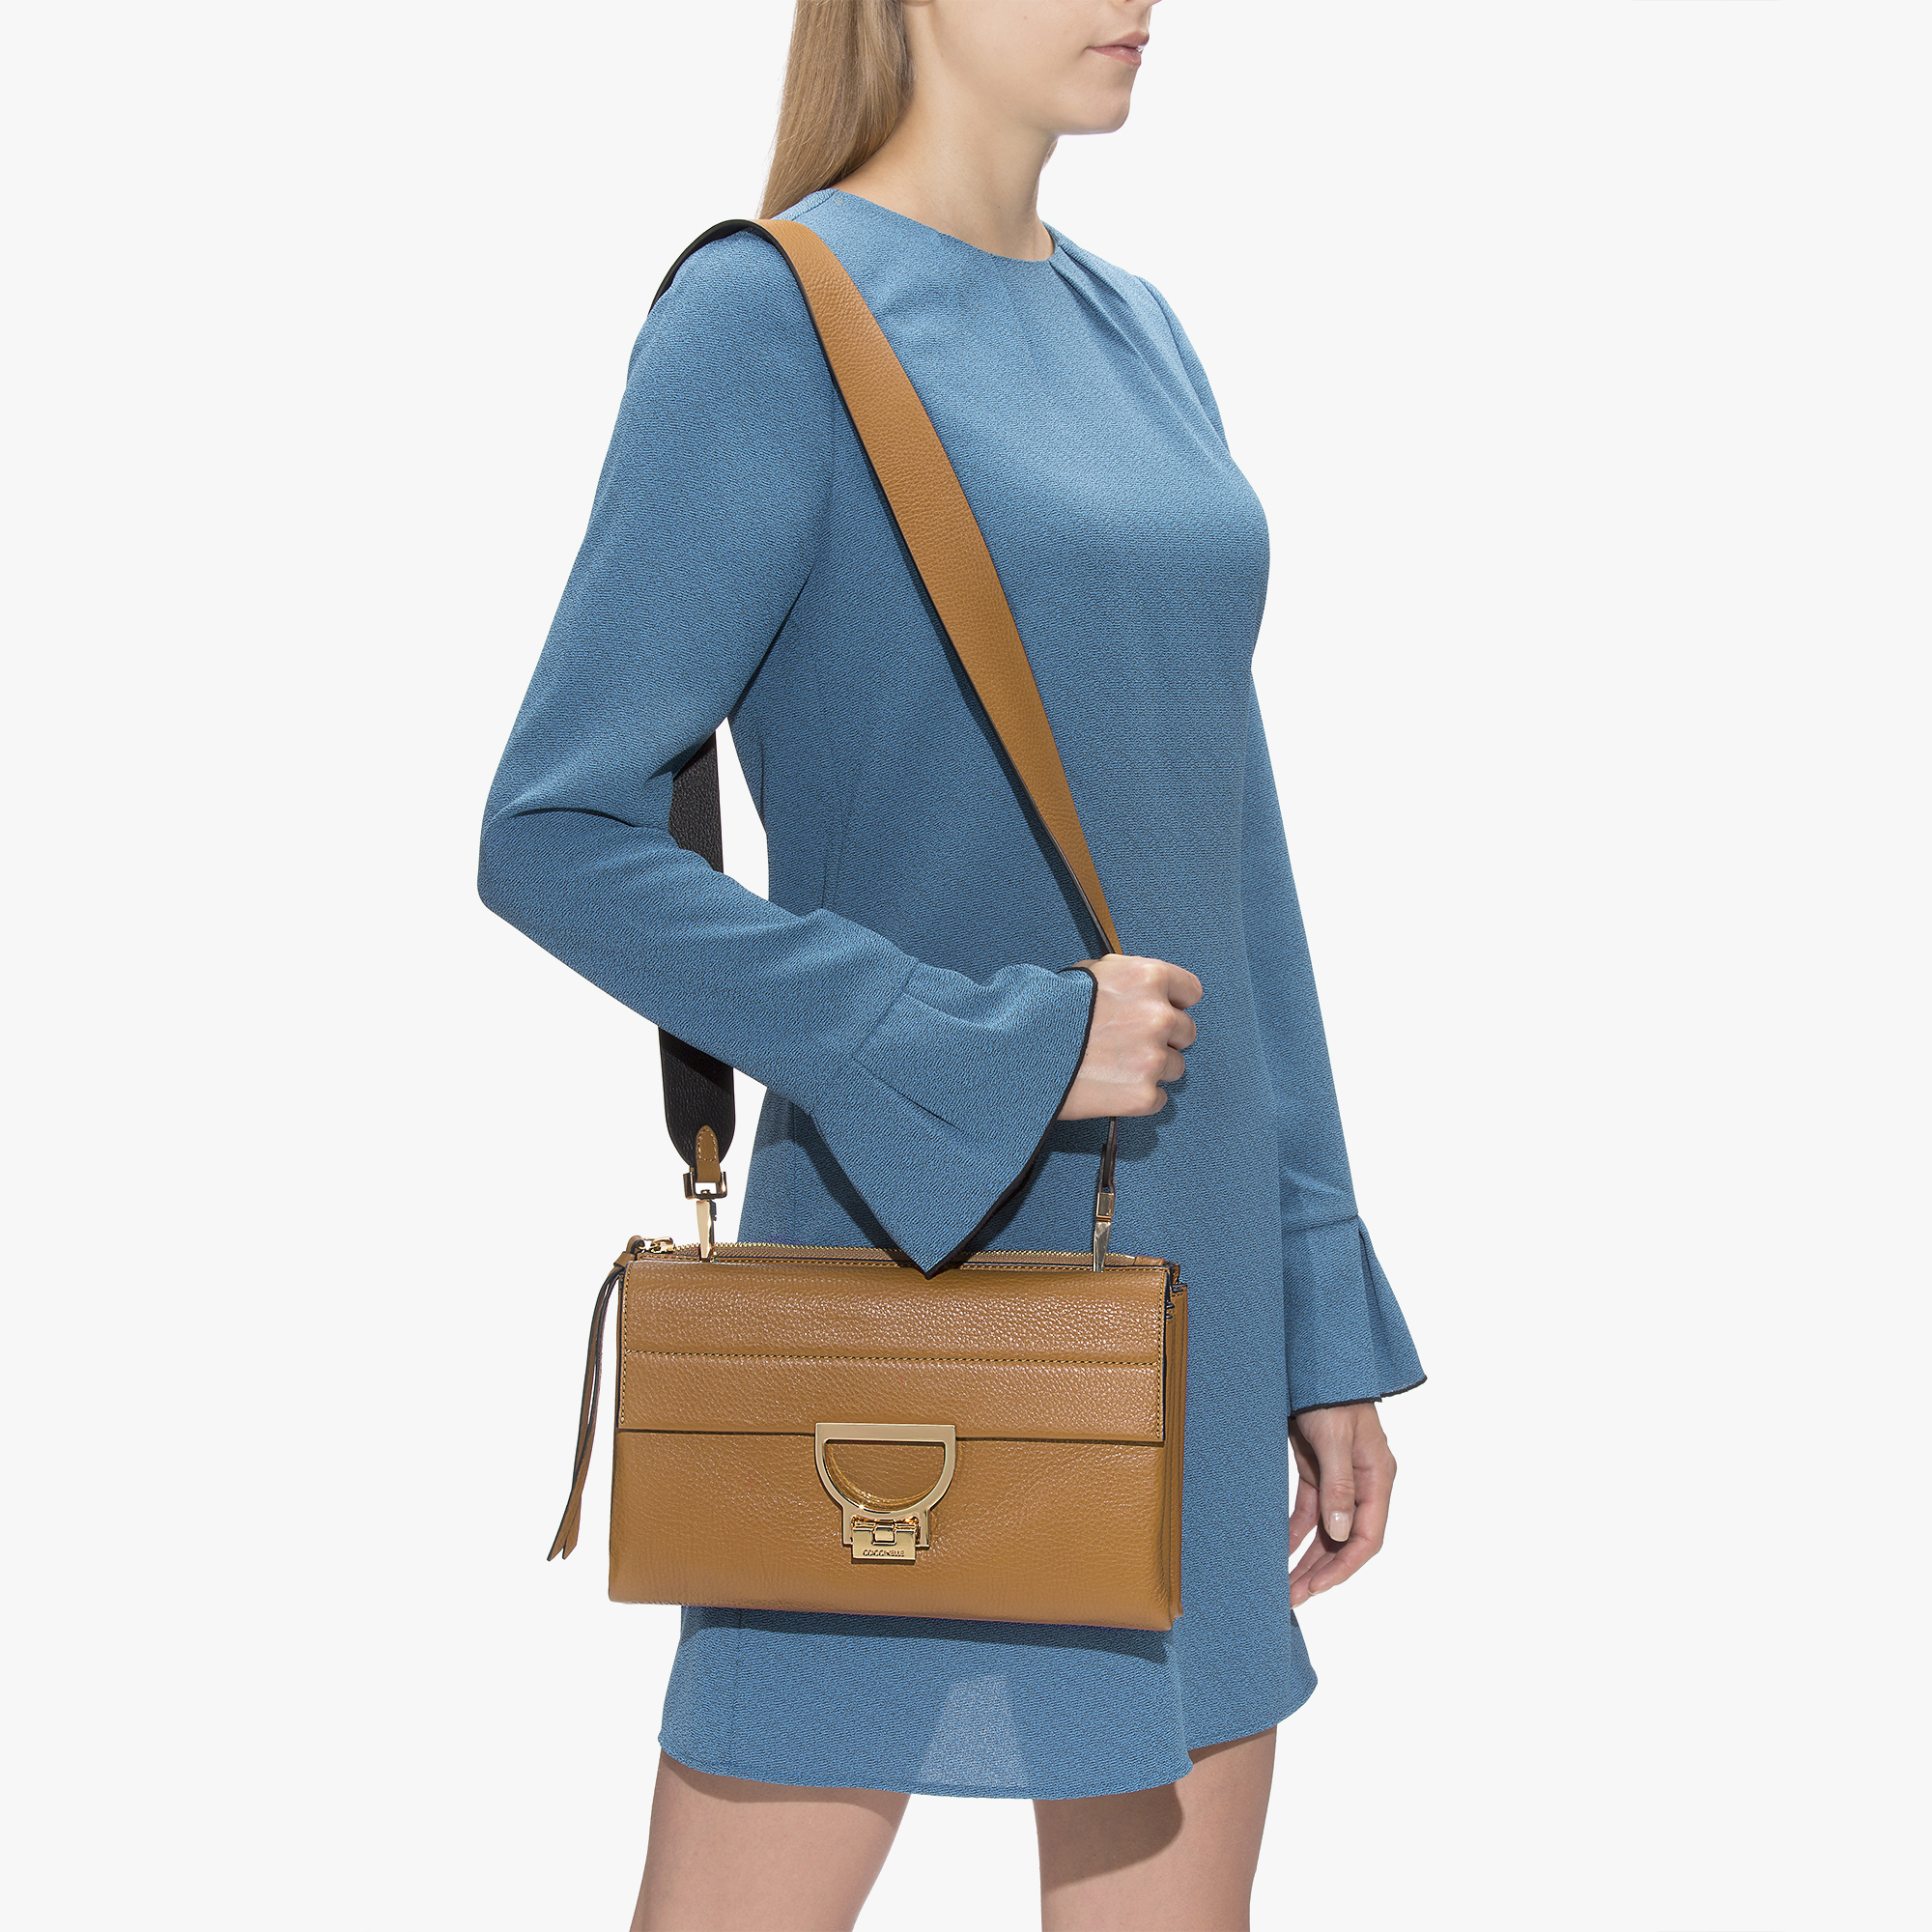 Arlettis leather bag with a single strap